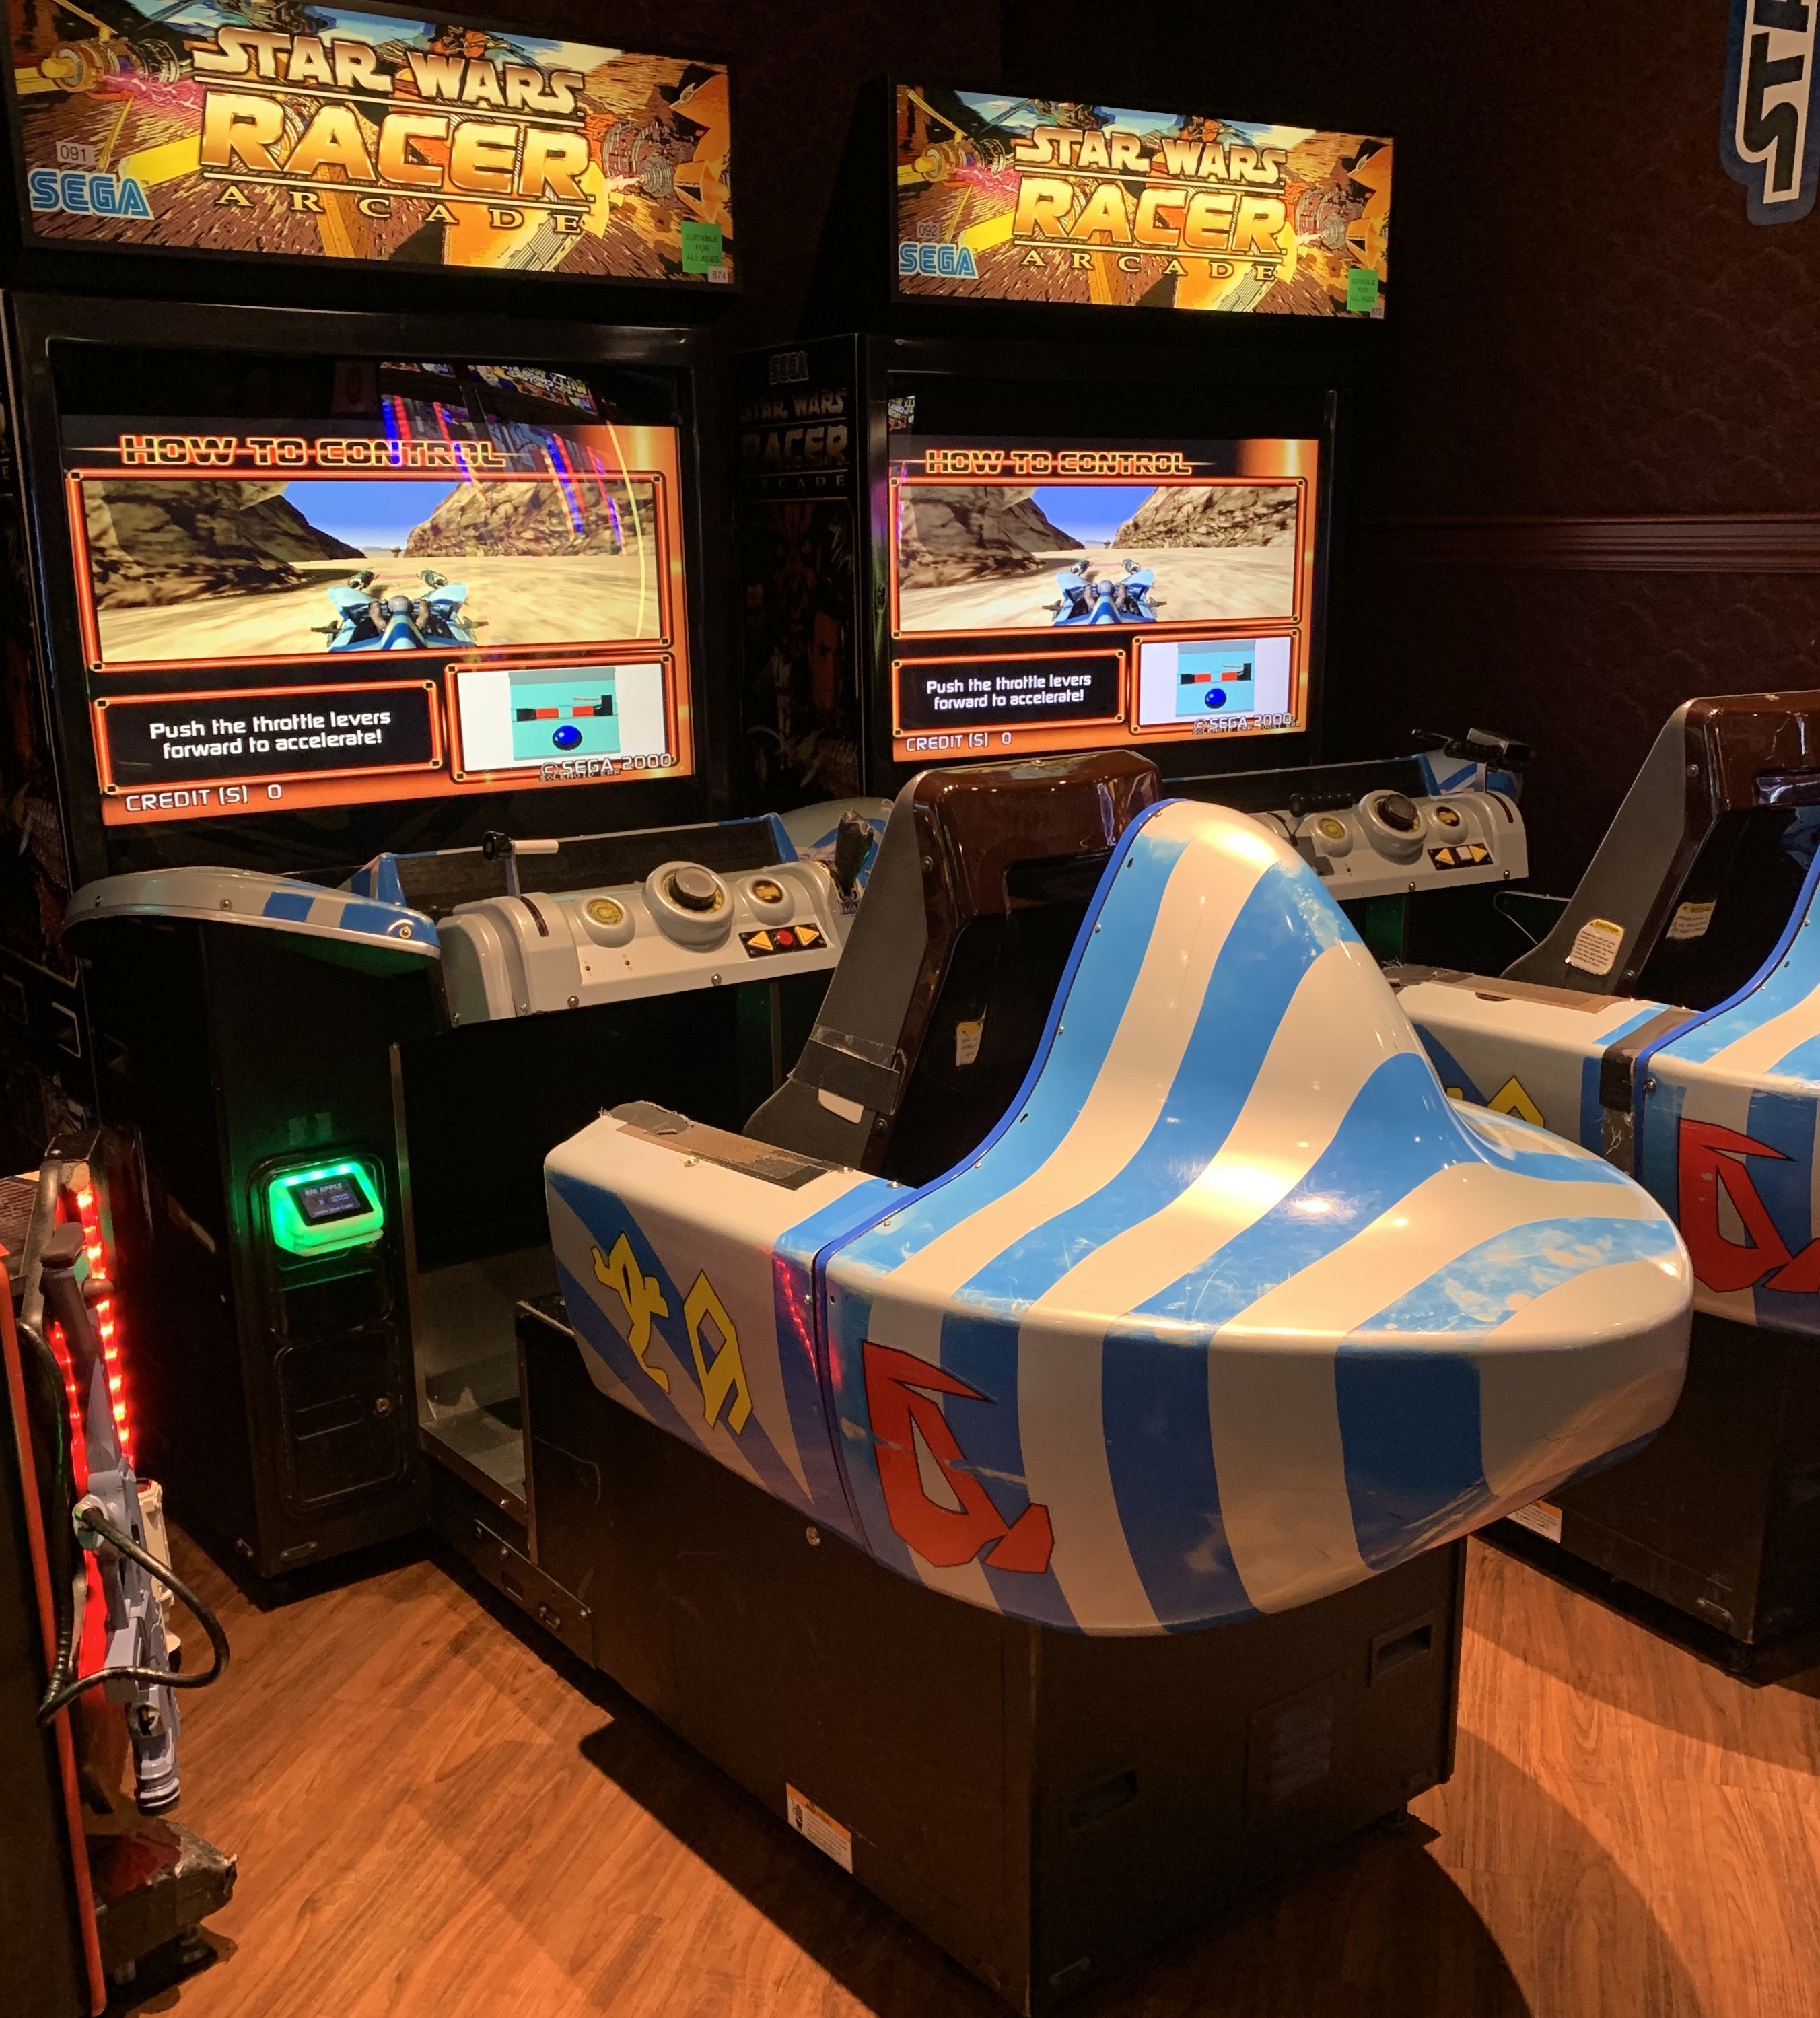 Star Wars Racer Arcade New York New York Resort 2019 Las Vegas, NV